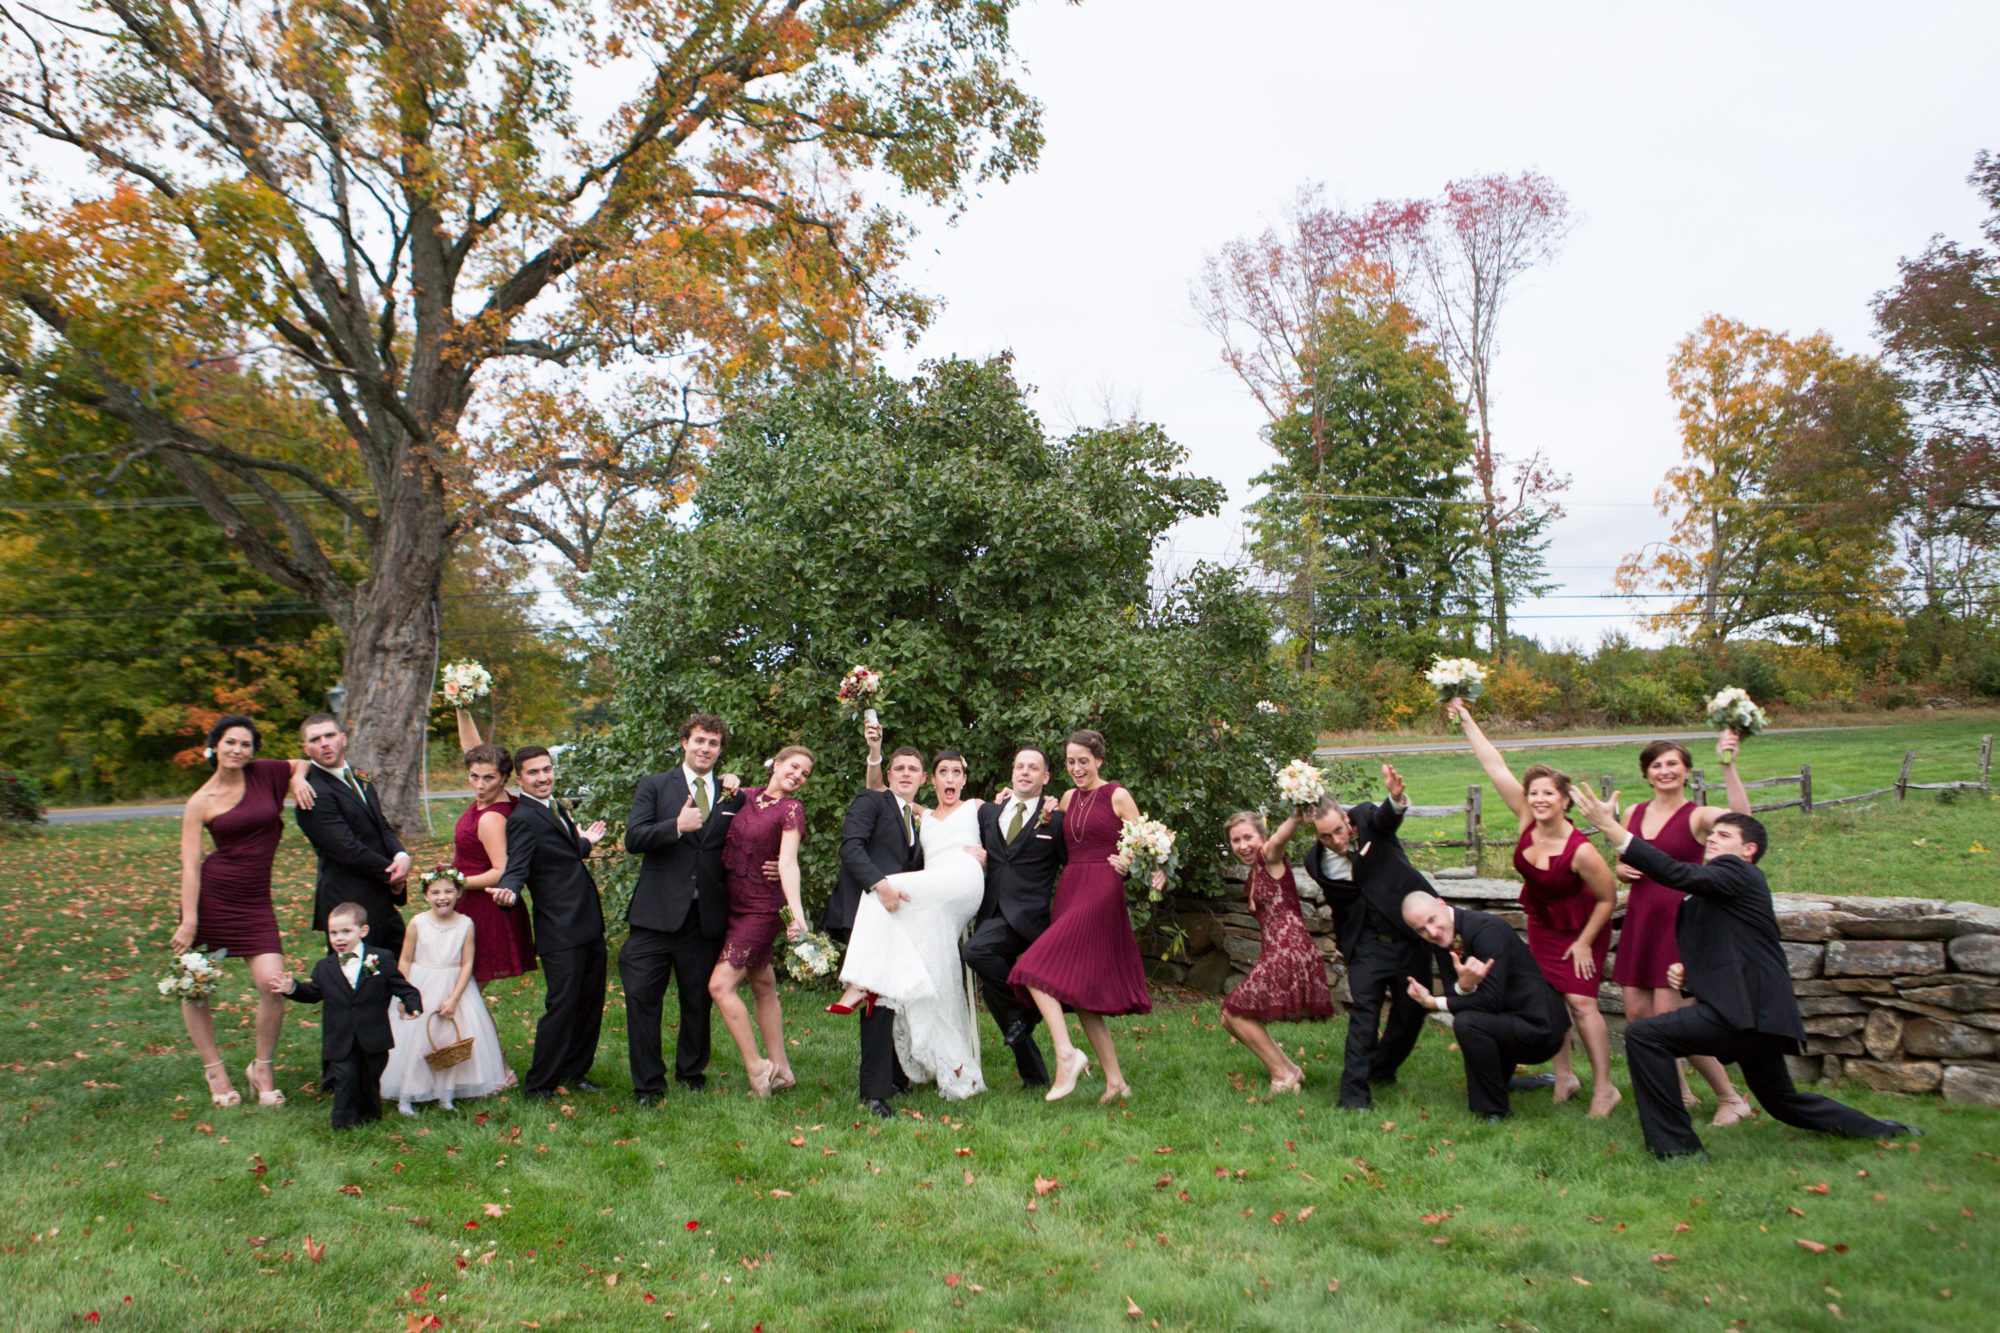 Wedding Party Silly Bride Groom Wedding Massachusetts Zsuzsi Pal Photography Destination